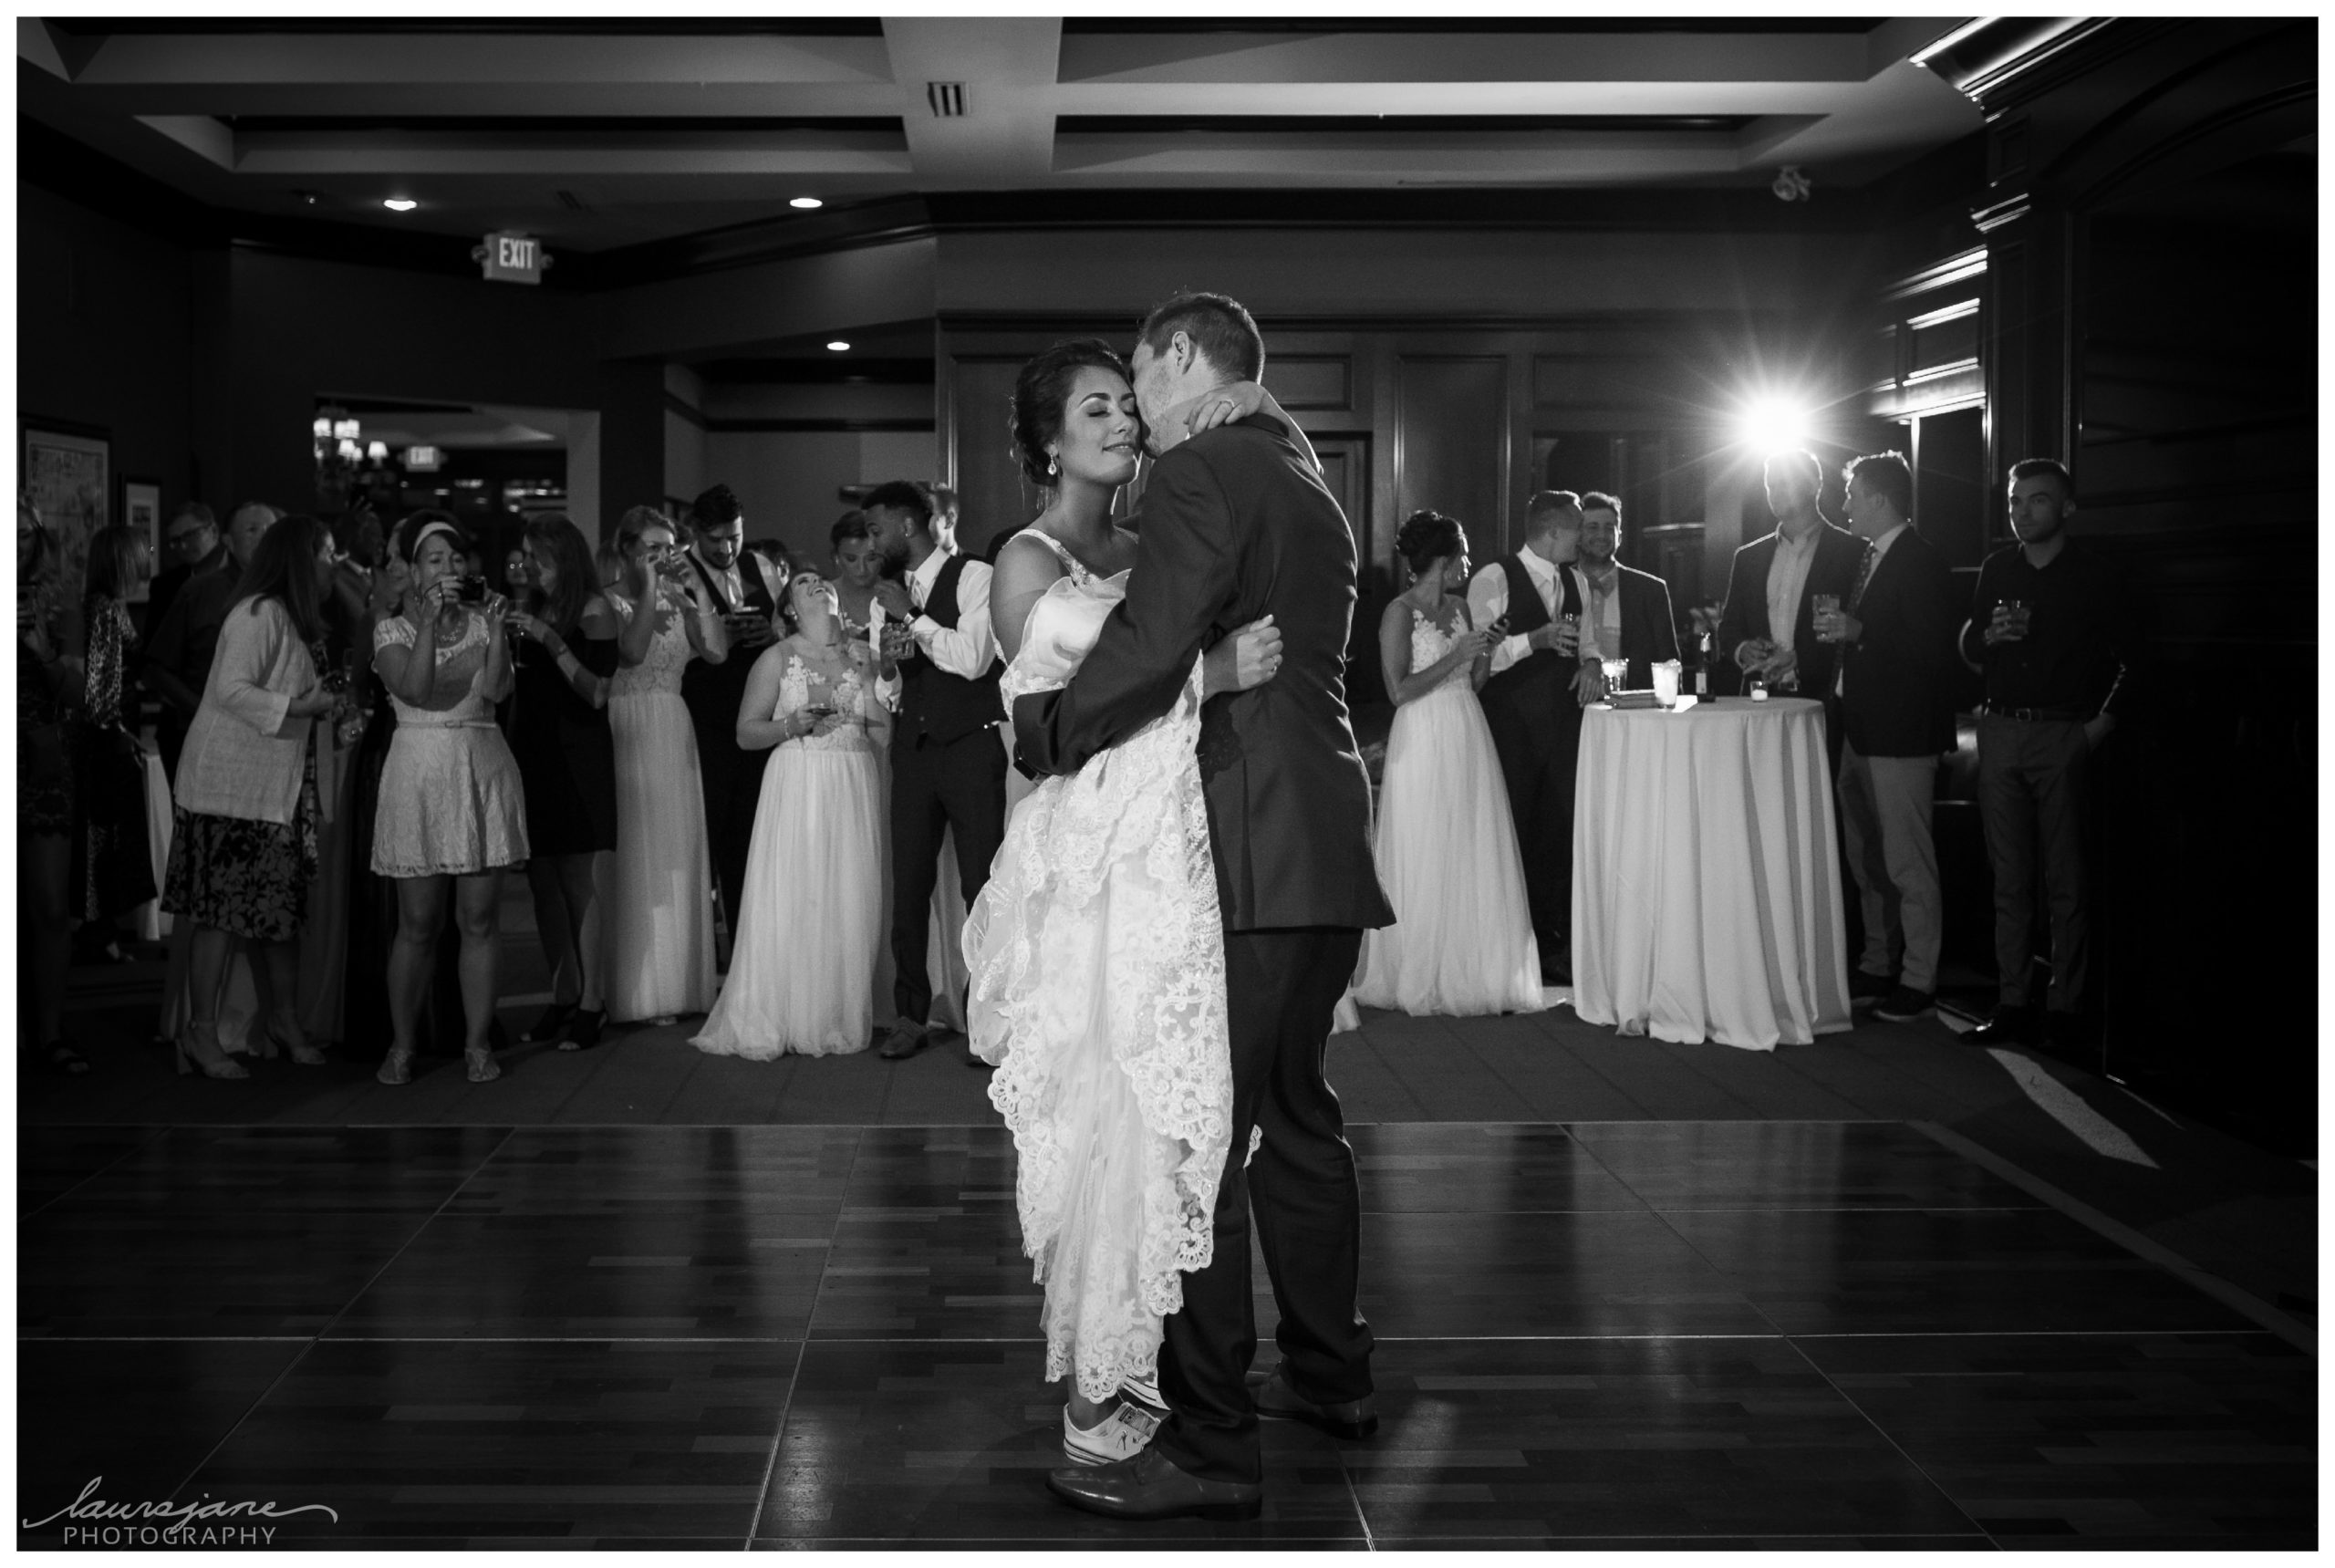 Intimate First Dance Photos by LauraJane Photography